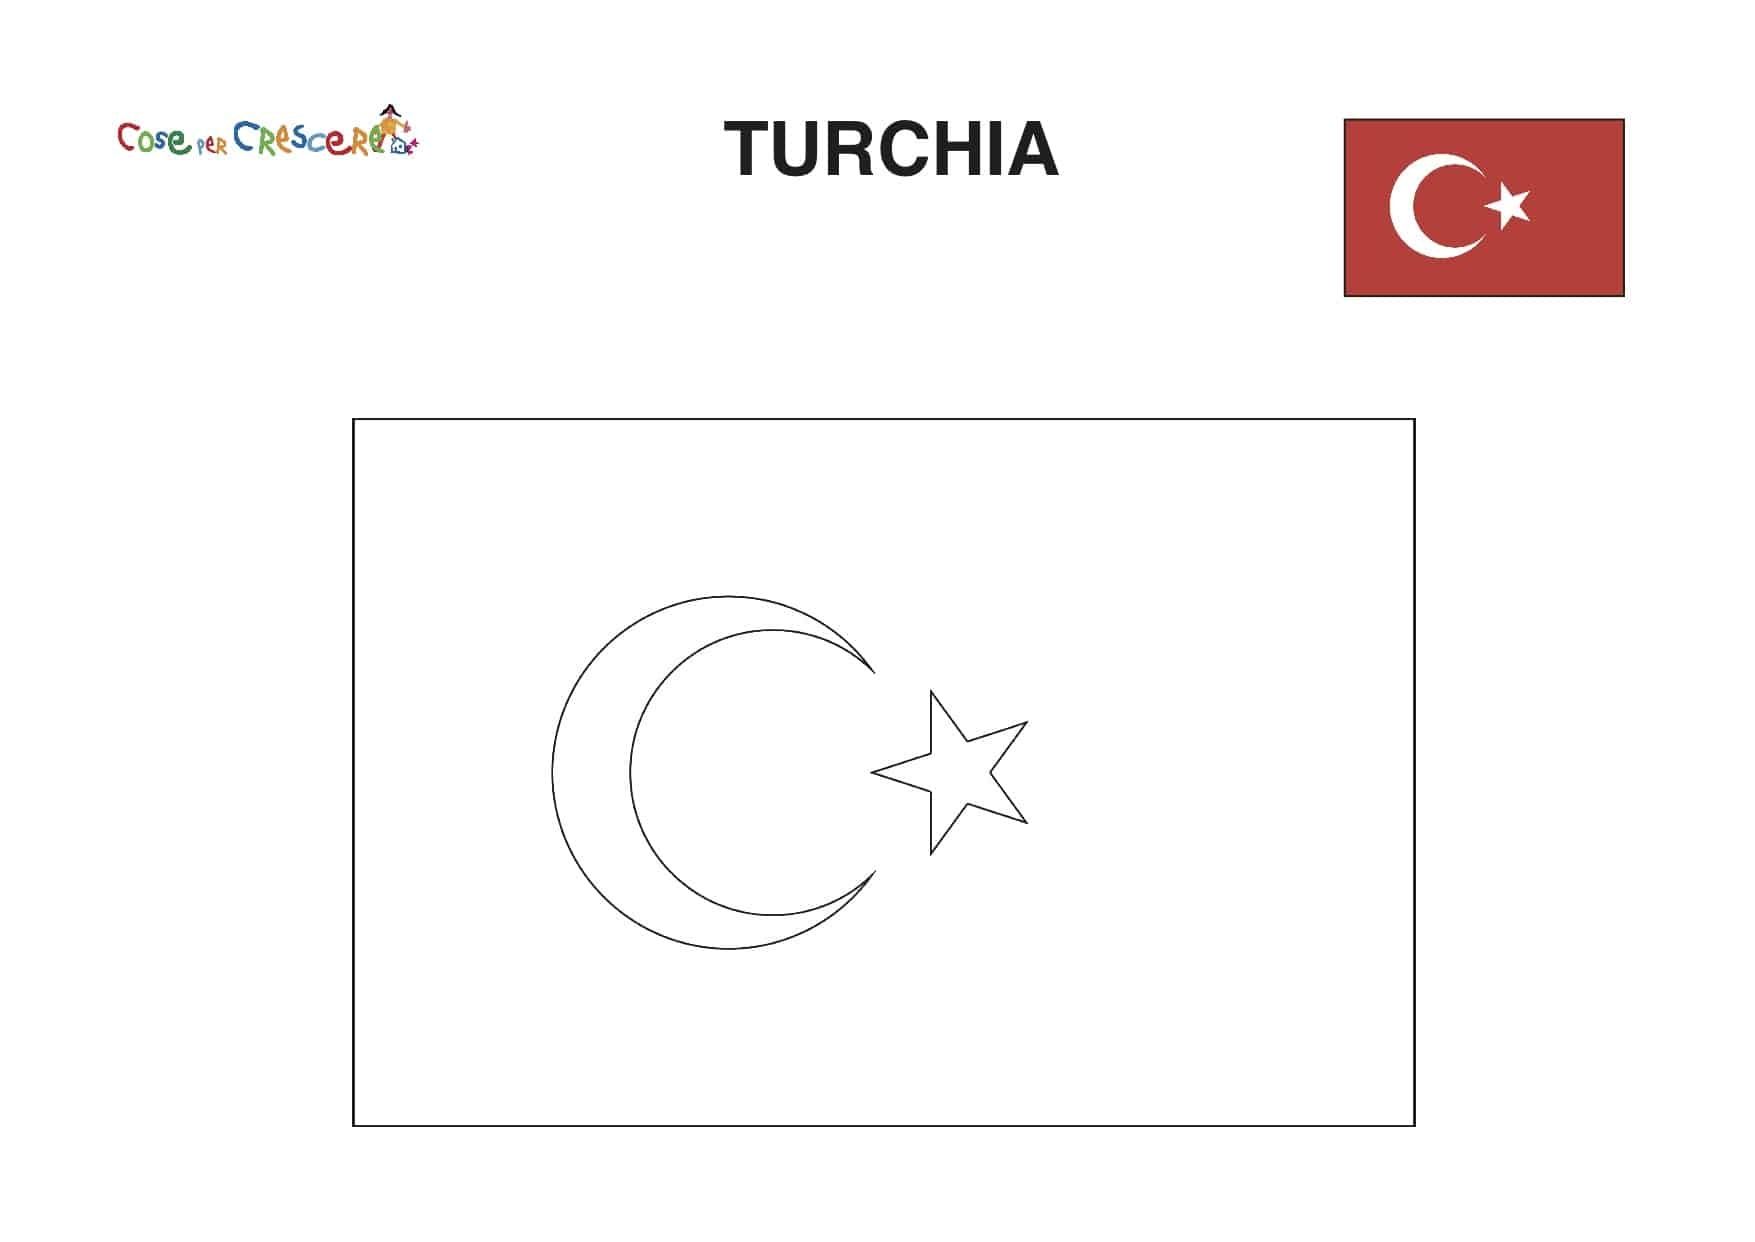 Bandiera Turchia da colorare